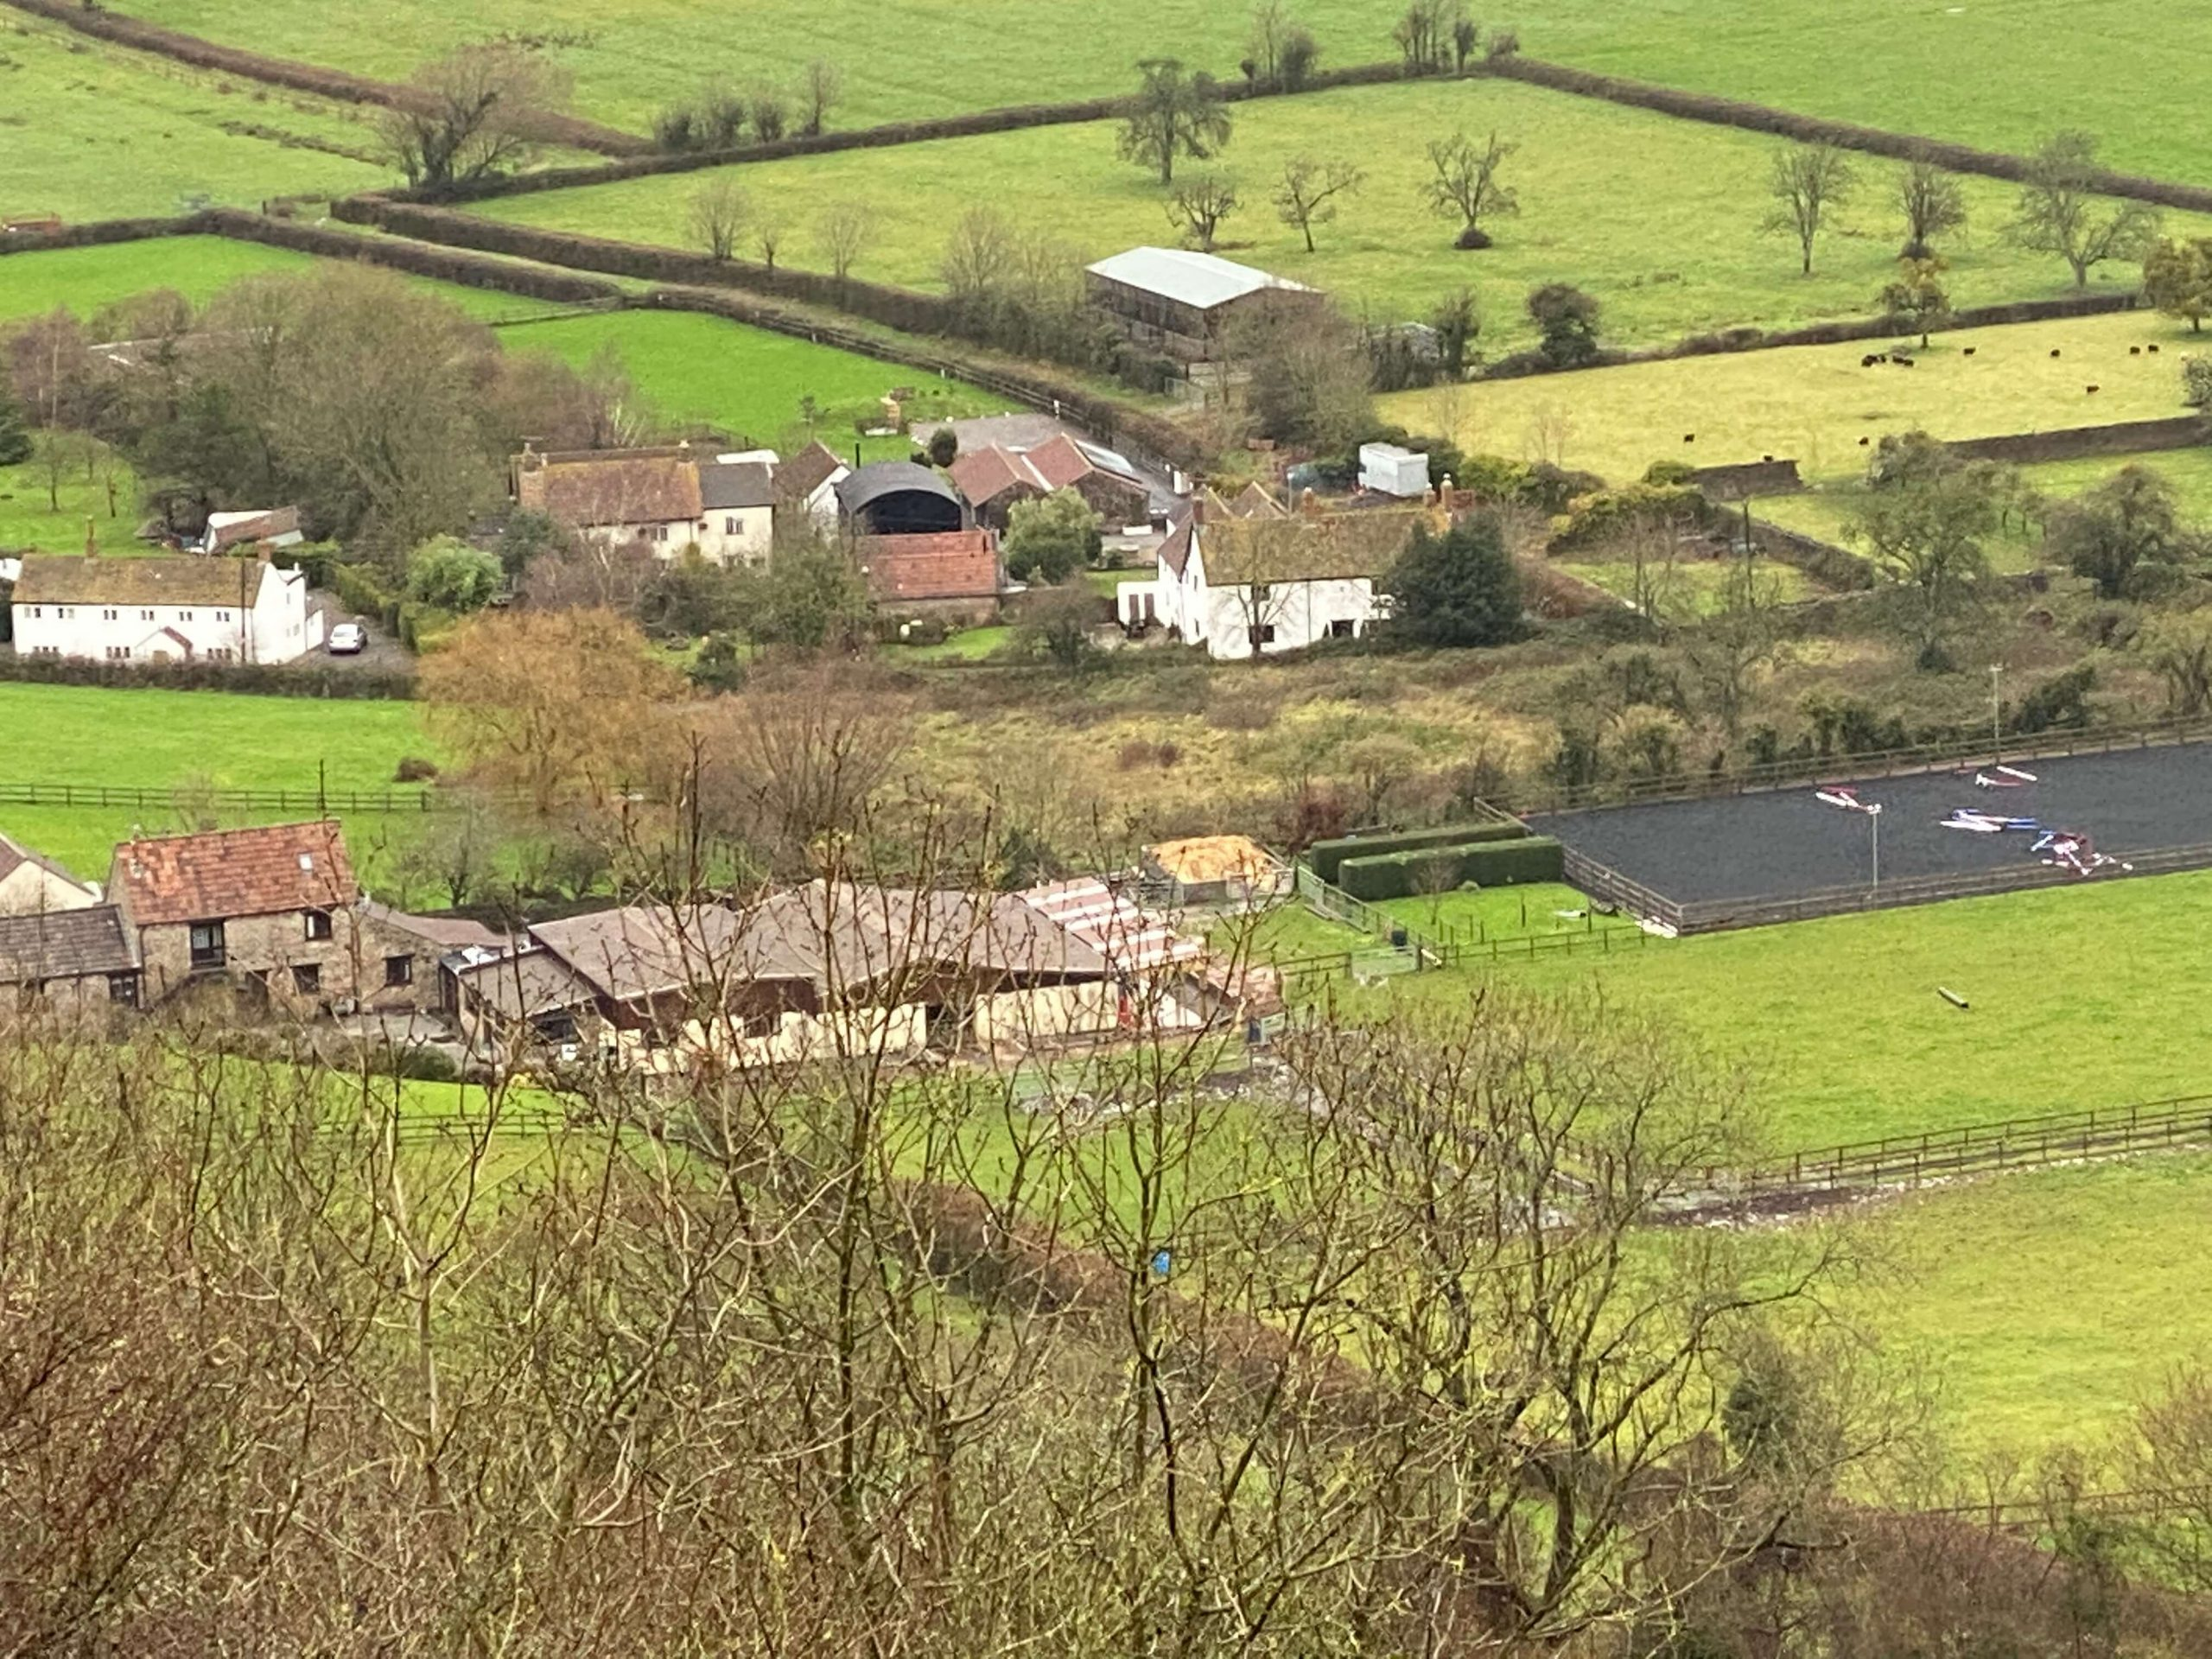 Home Farm Cottages from the Mendips Somerset